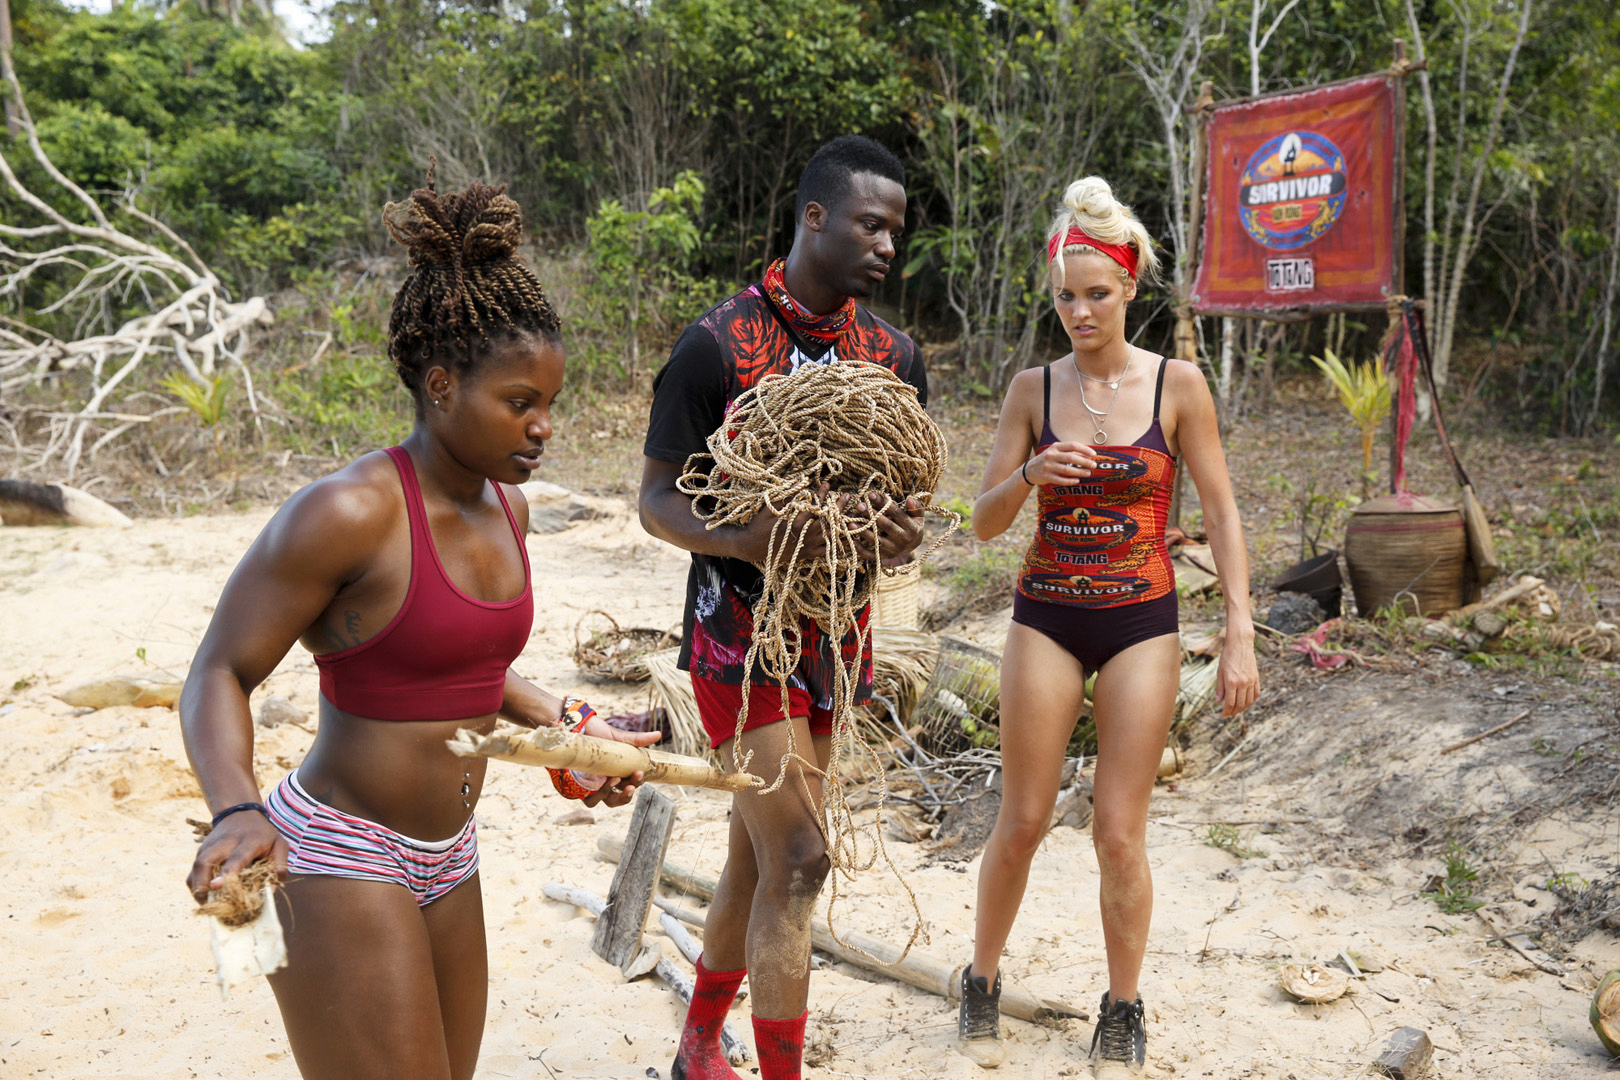 6. What will you walk away with from your Survivor experience?